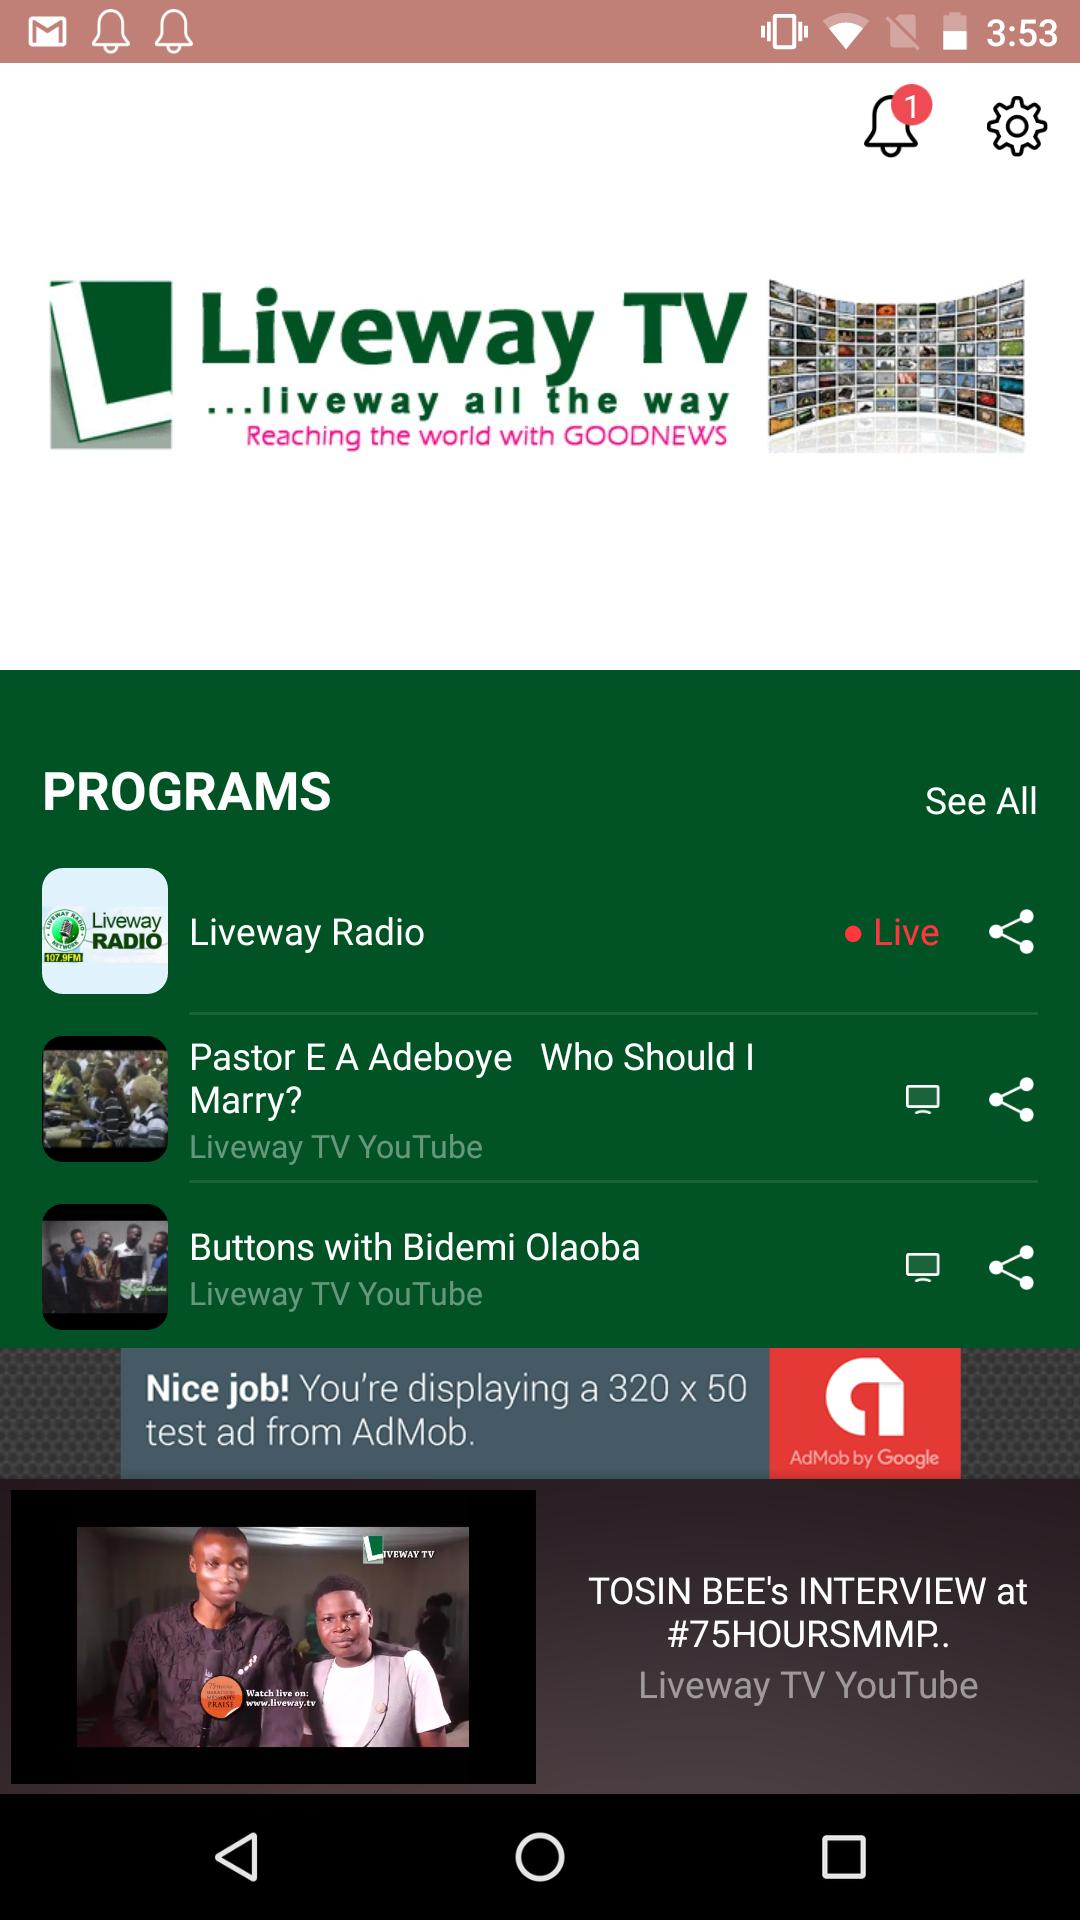 Liveway TV for Android - APK Download